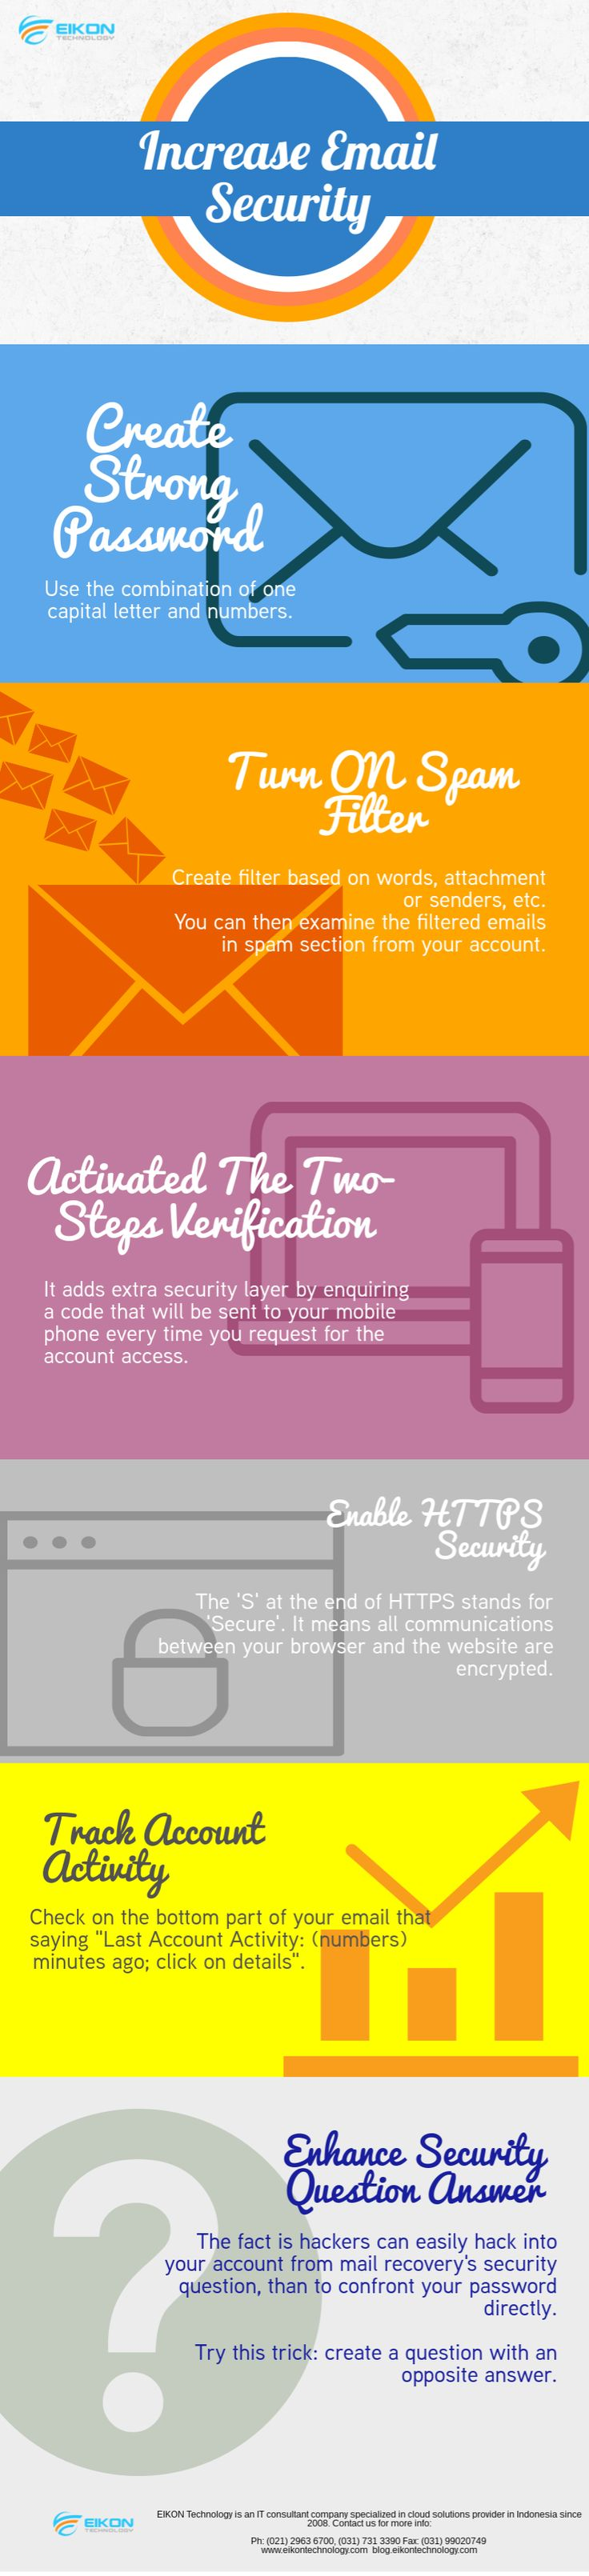 Here's the tip to increase #emailSecurity! #eikontechnology